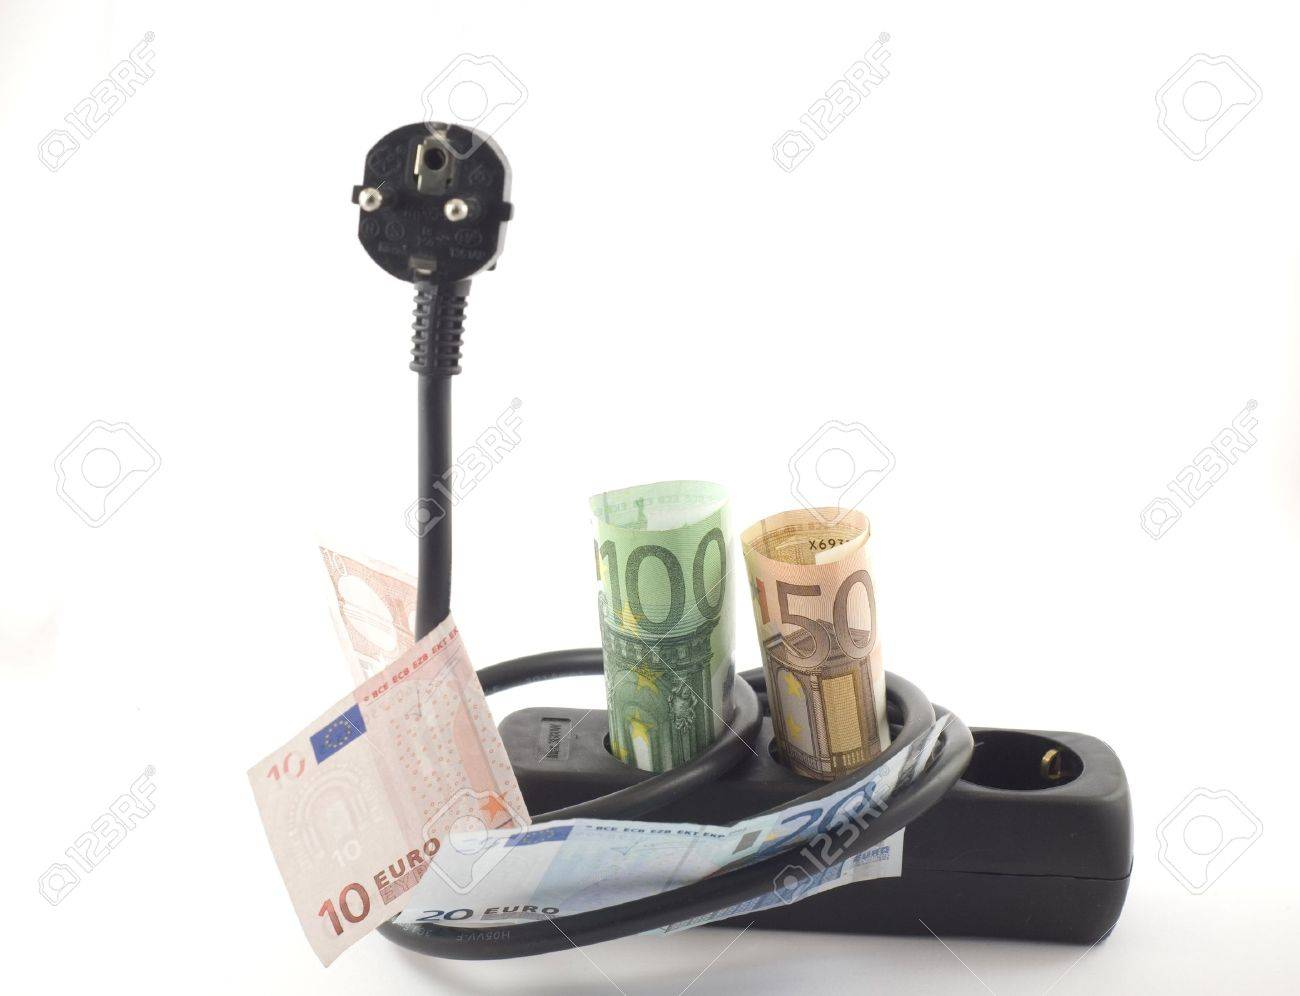 Electricity cable, plug and socket covered with banknotes. Stock Photo - 16852795